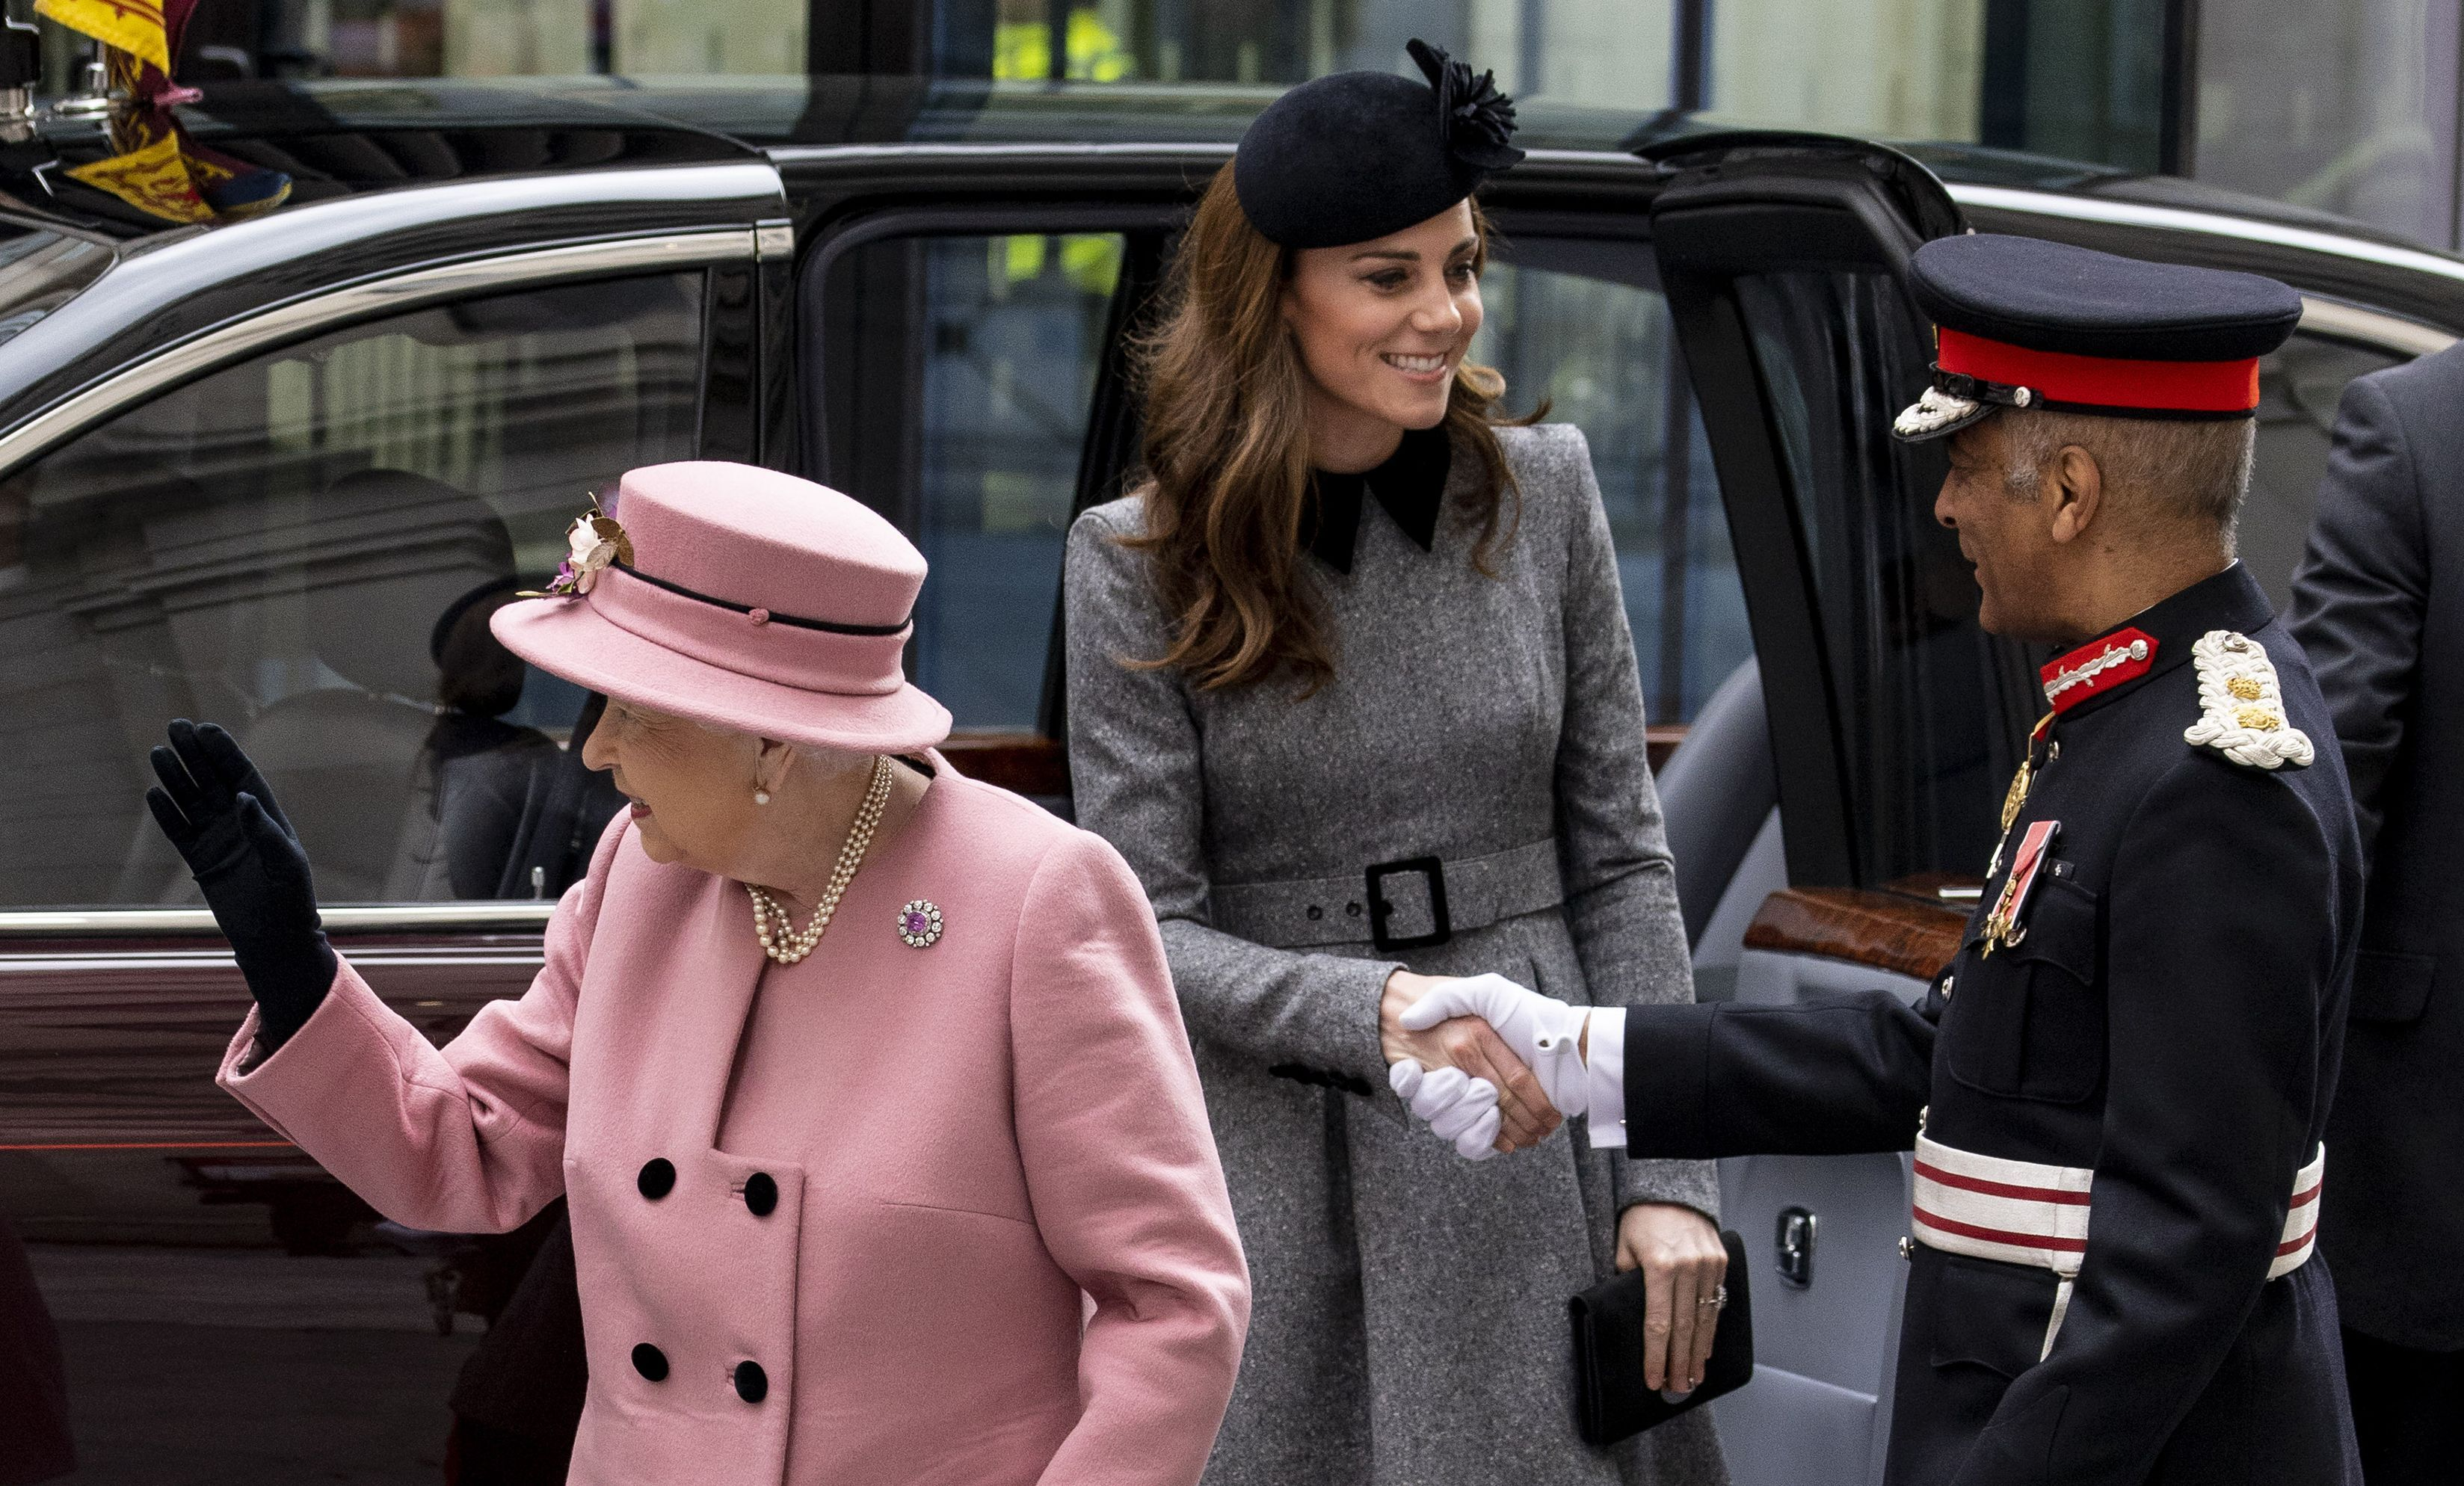 See All the Best Photos of Kate Middleton and Queen Elizabeth's Visit to Kings College London Today